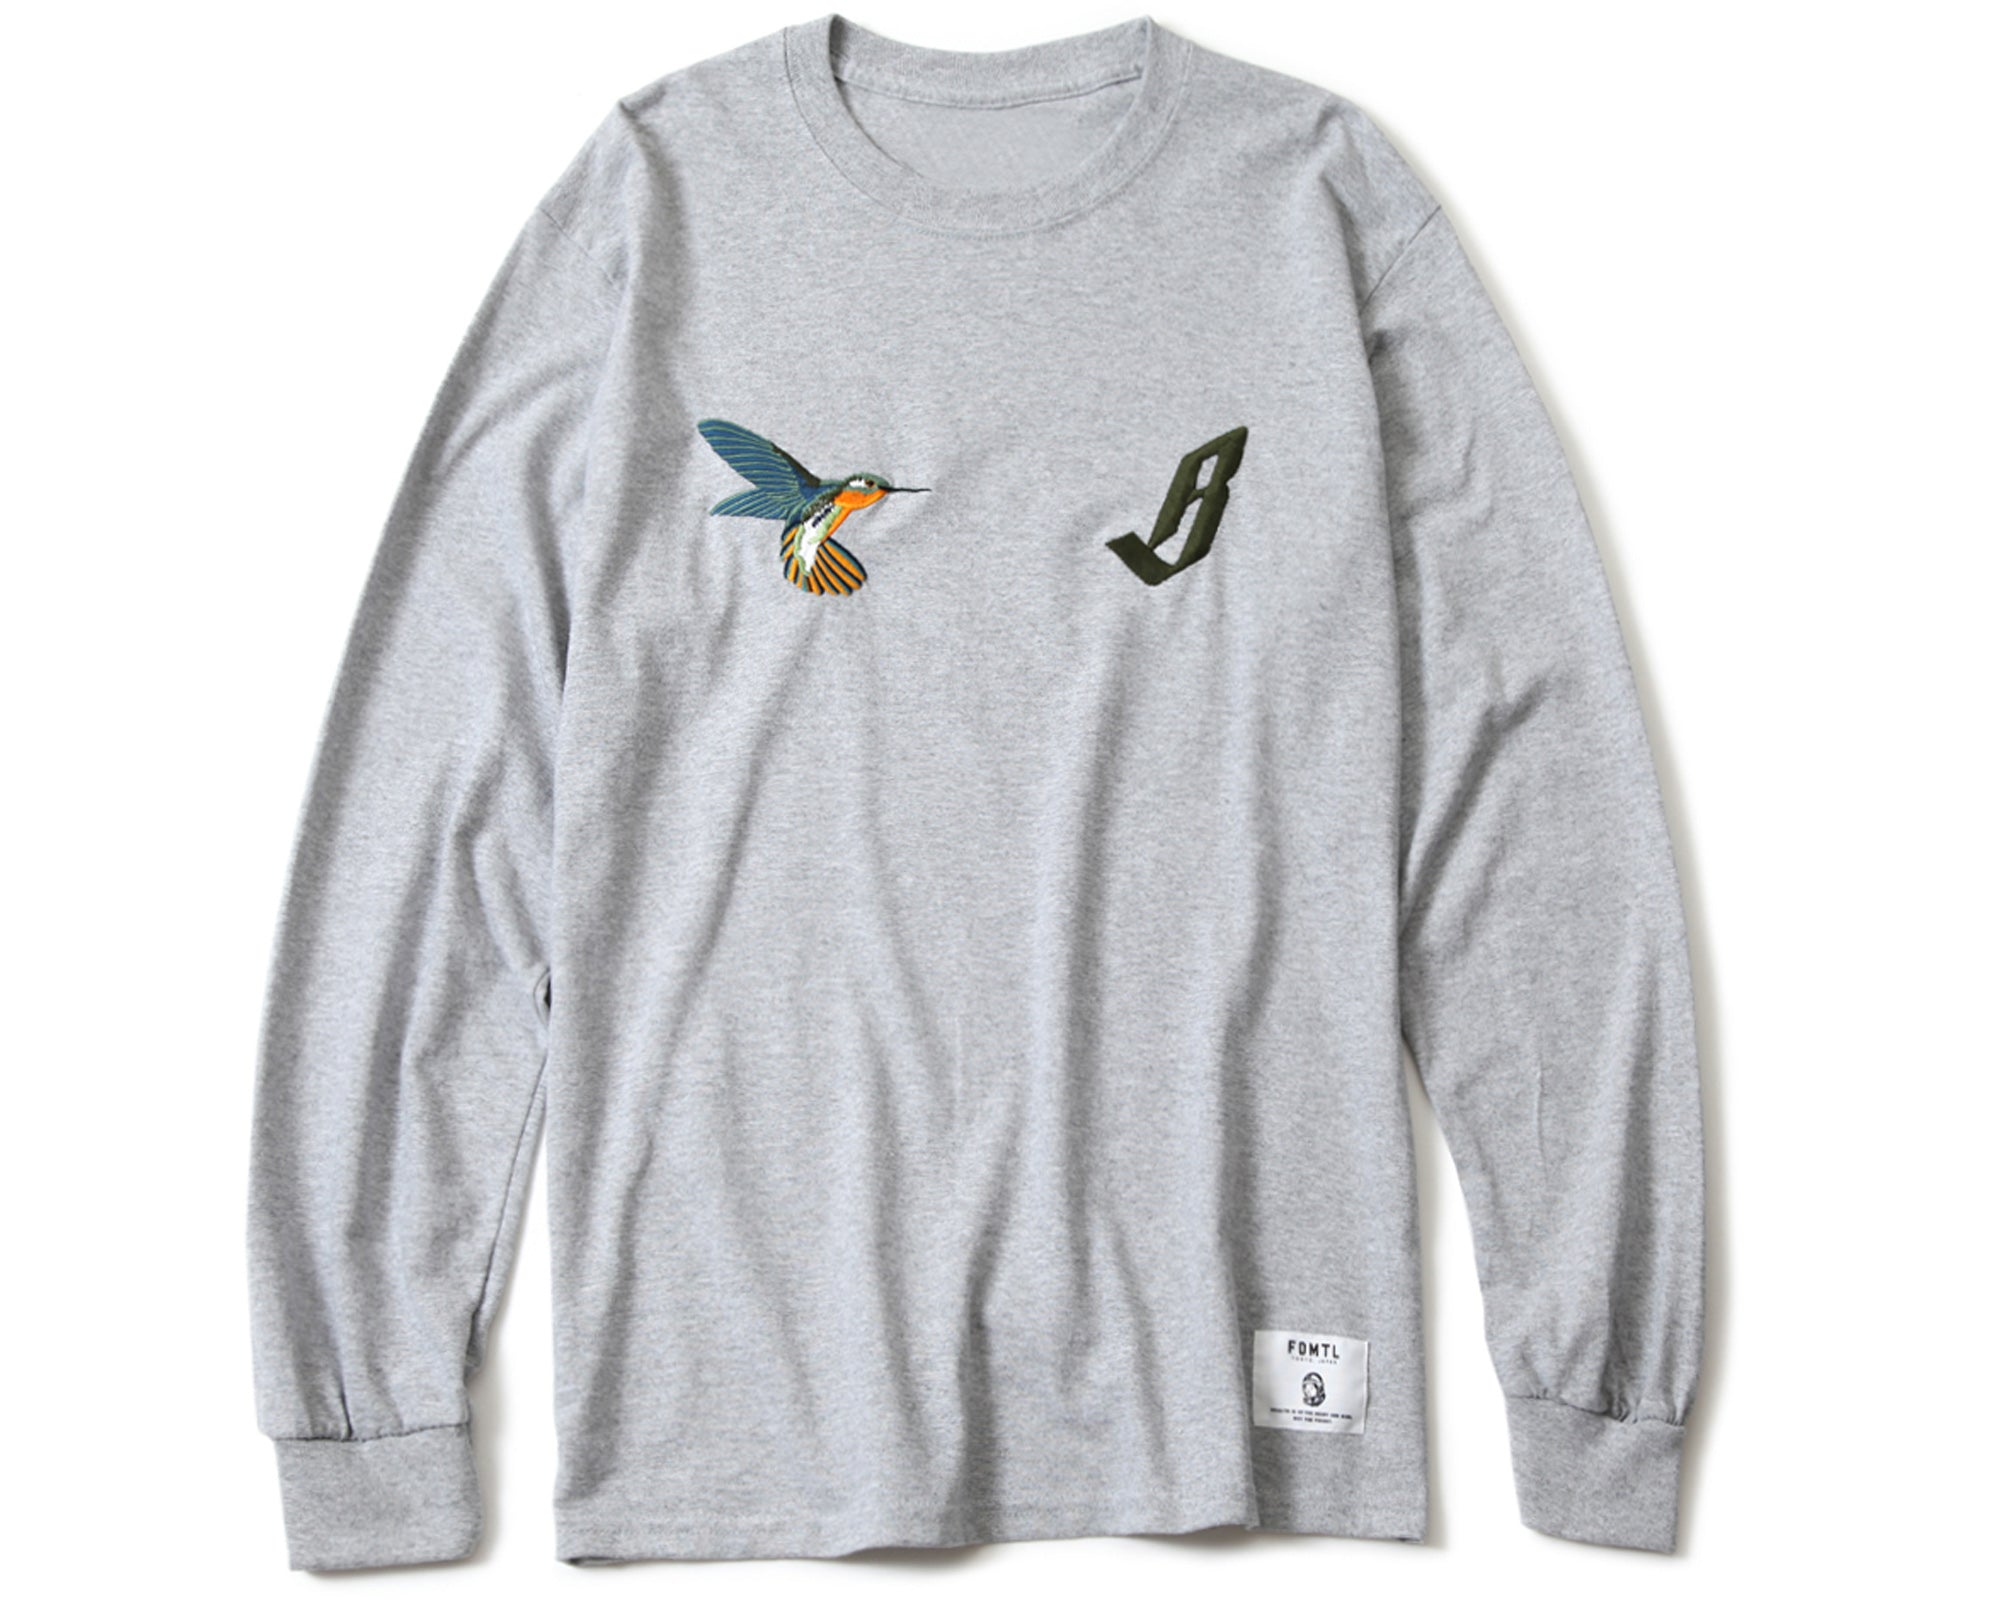 EMBROIDERED L/S T-SHIRT - GREY